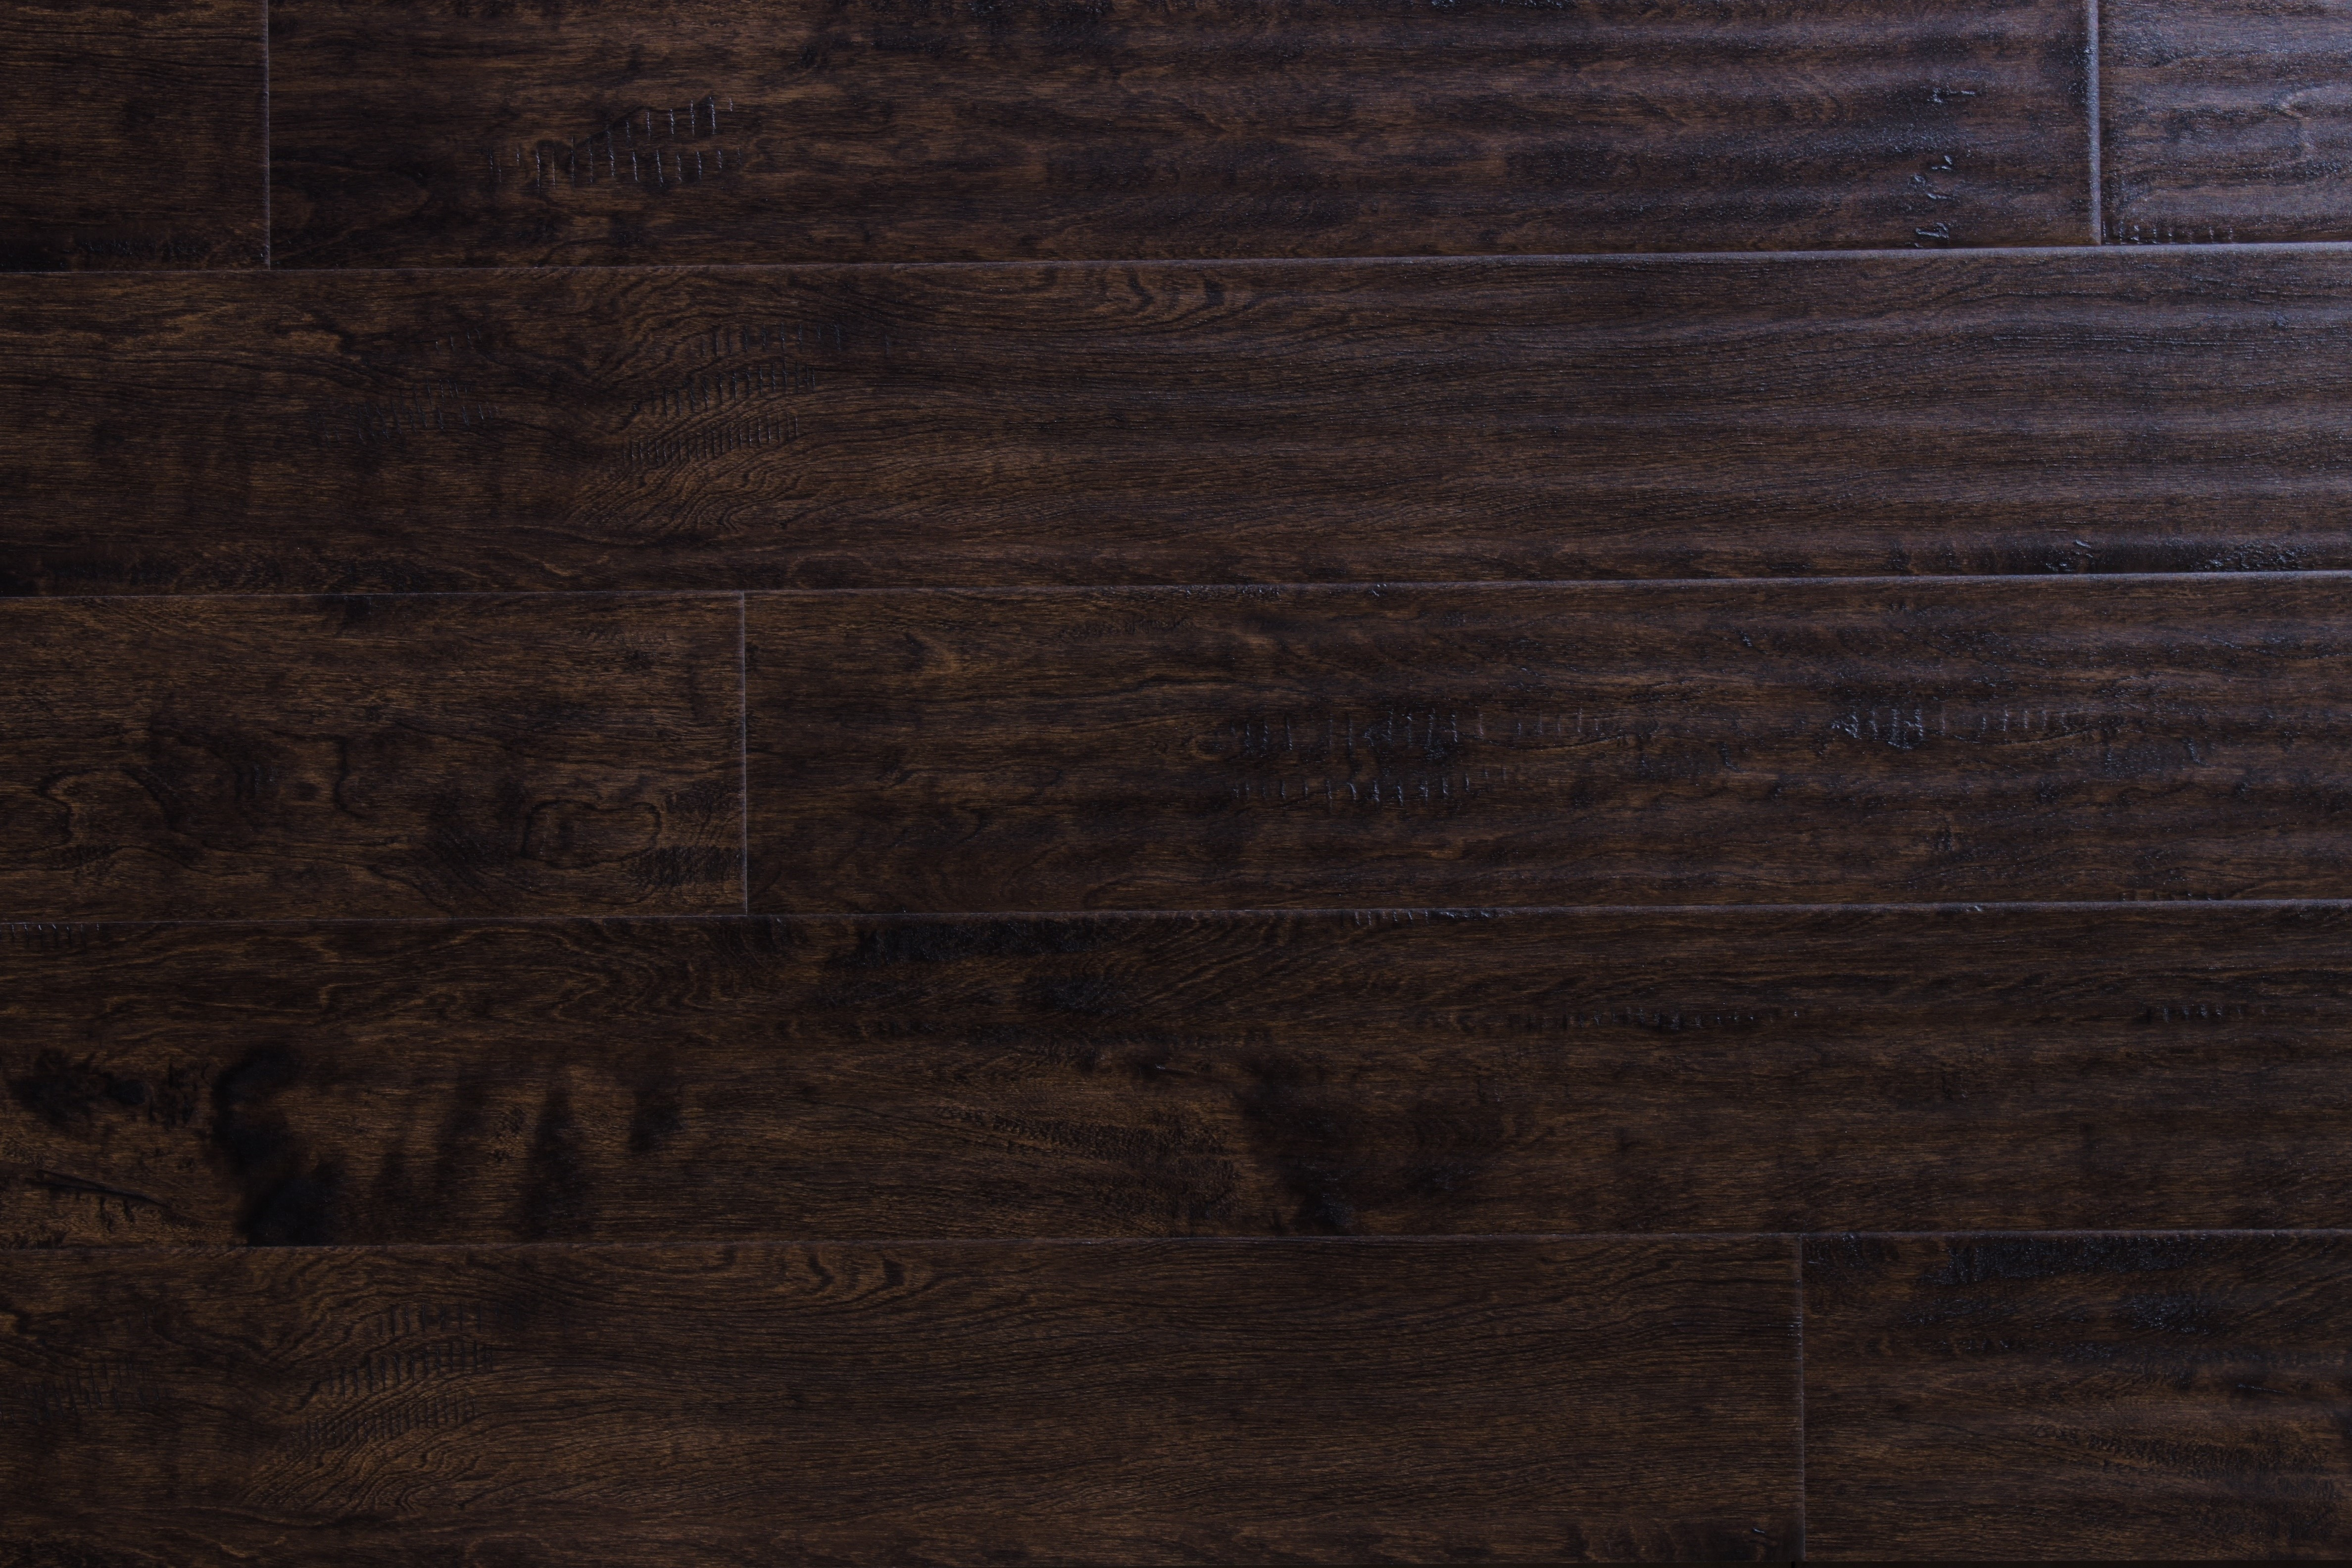 bamboo hardwood flooring prices of wood flooring free samples available at builddirecta with tailor multi gb 5874277bb8d3c